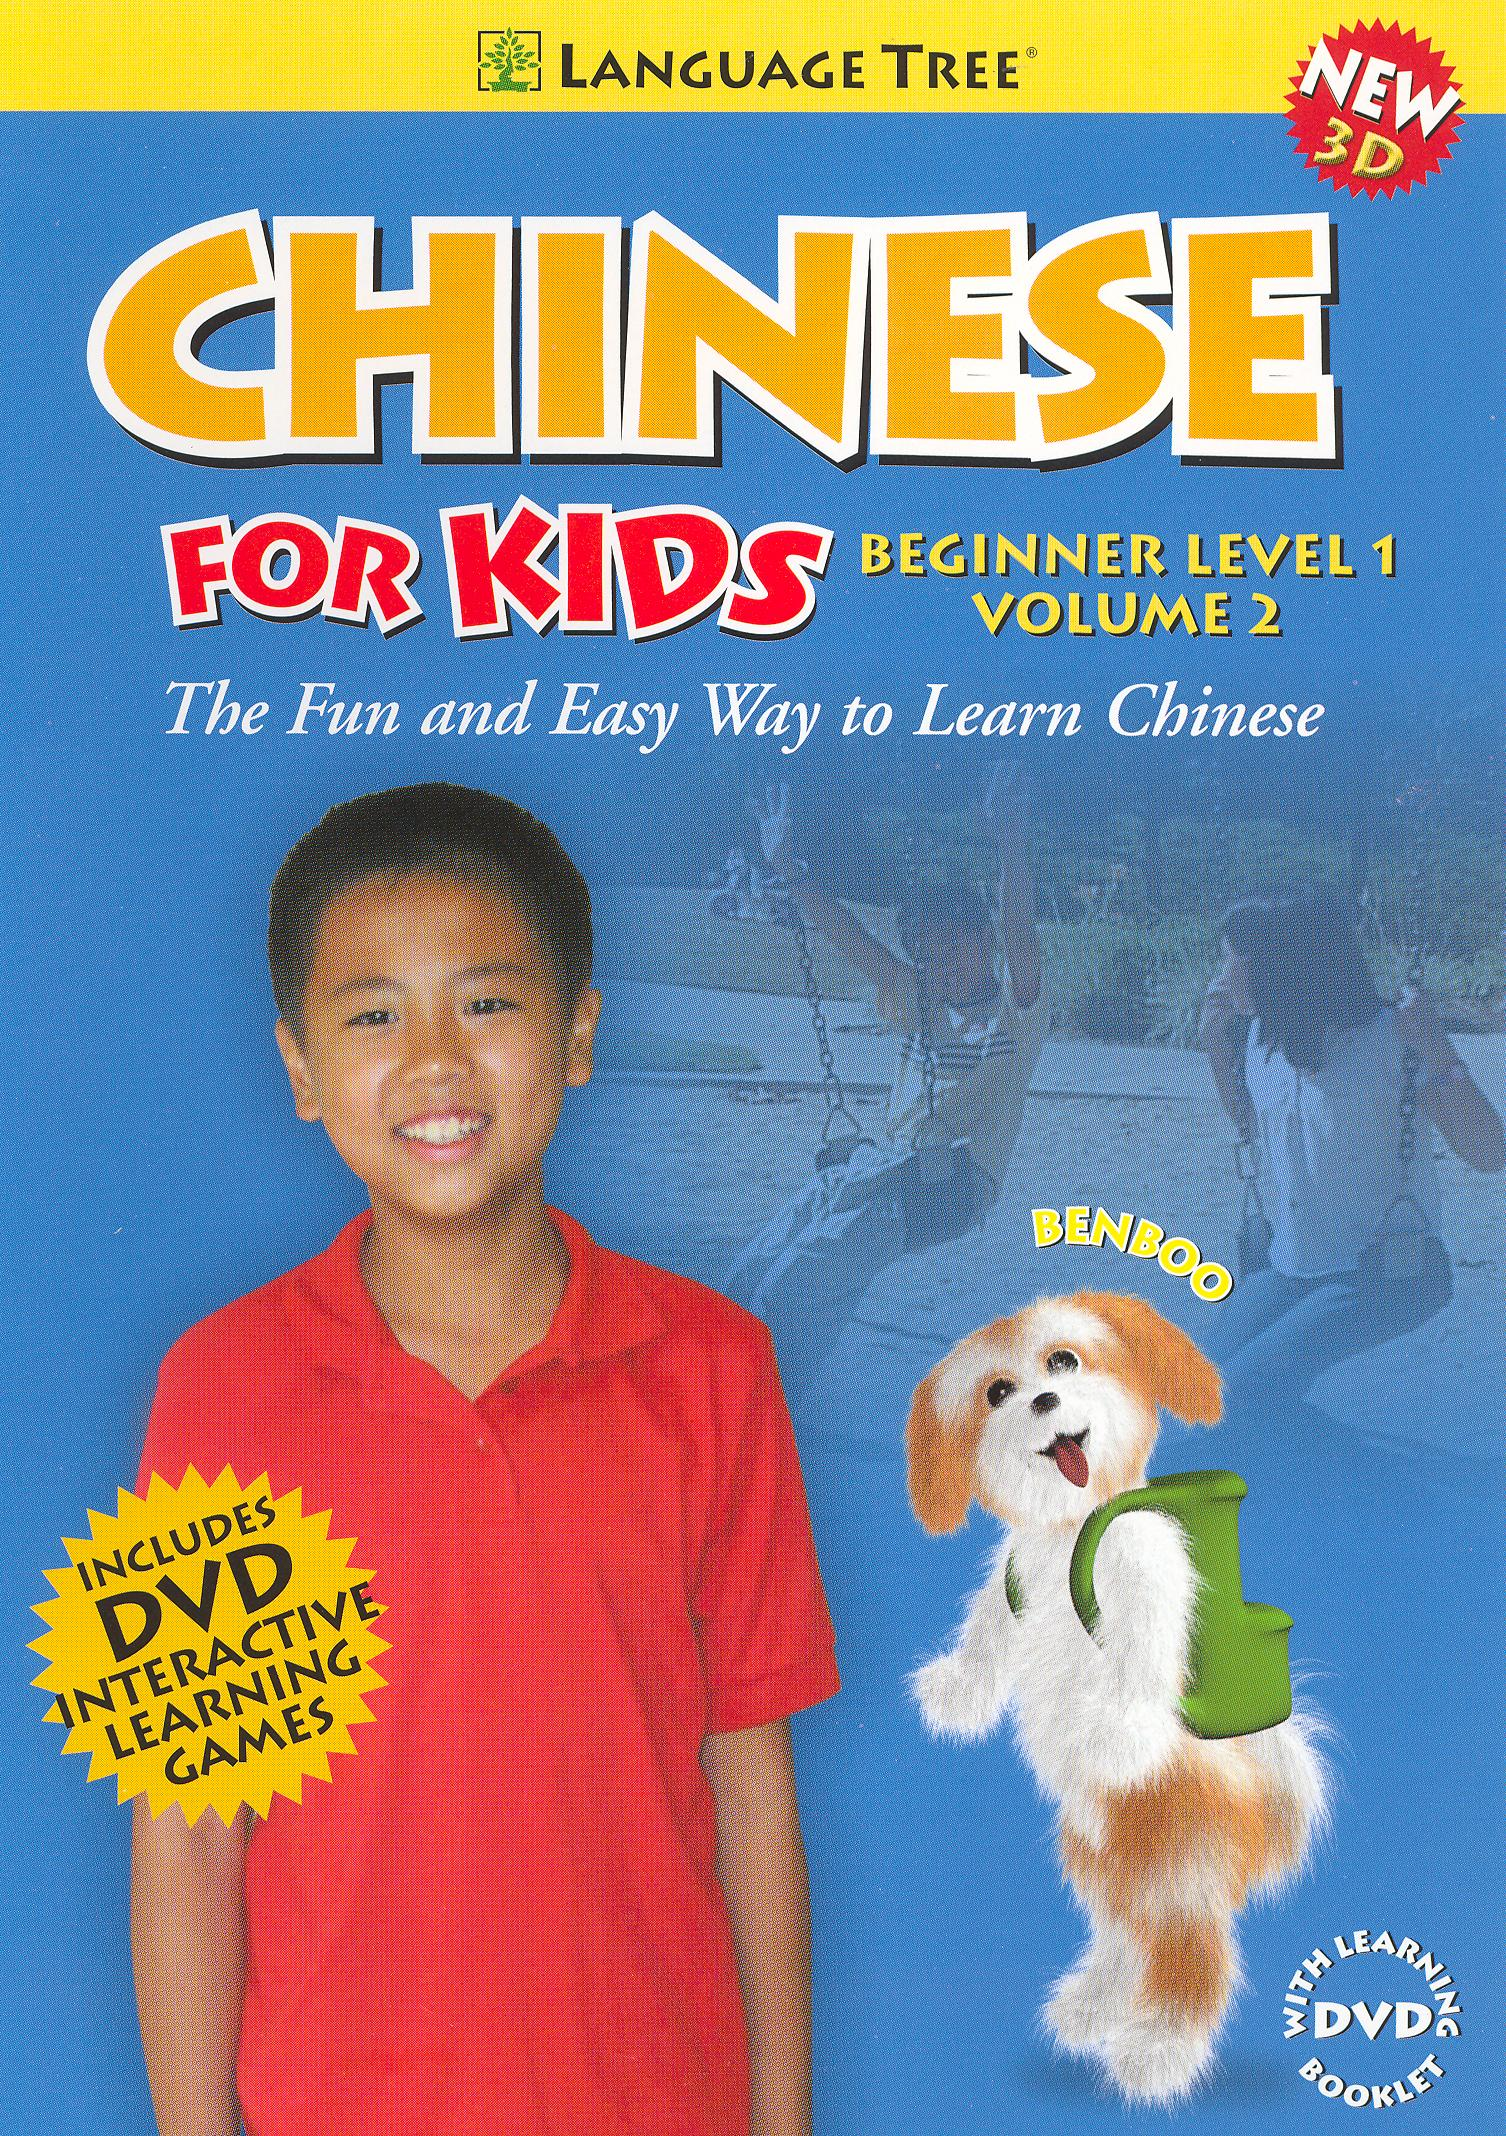 Chinese for Kids, Vol. 2